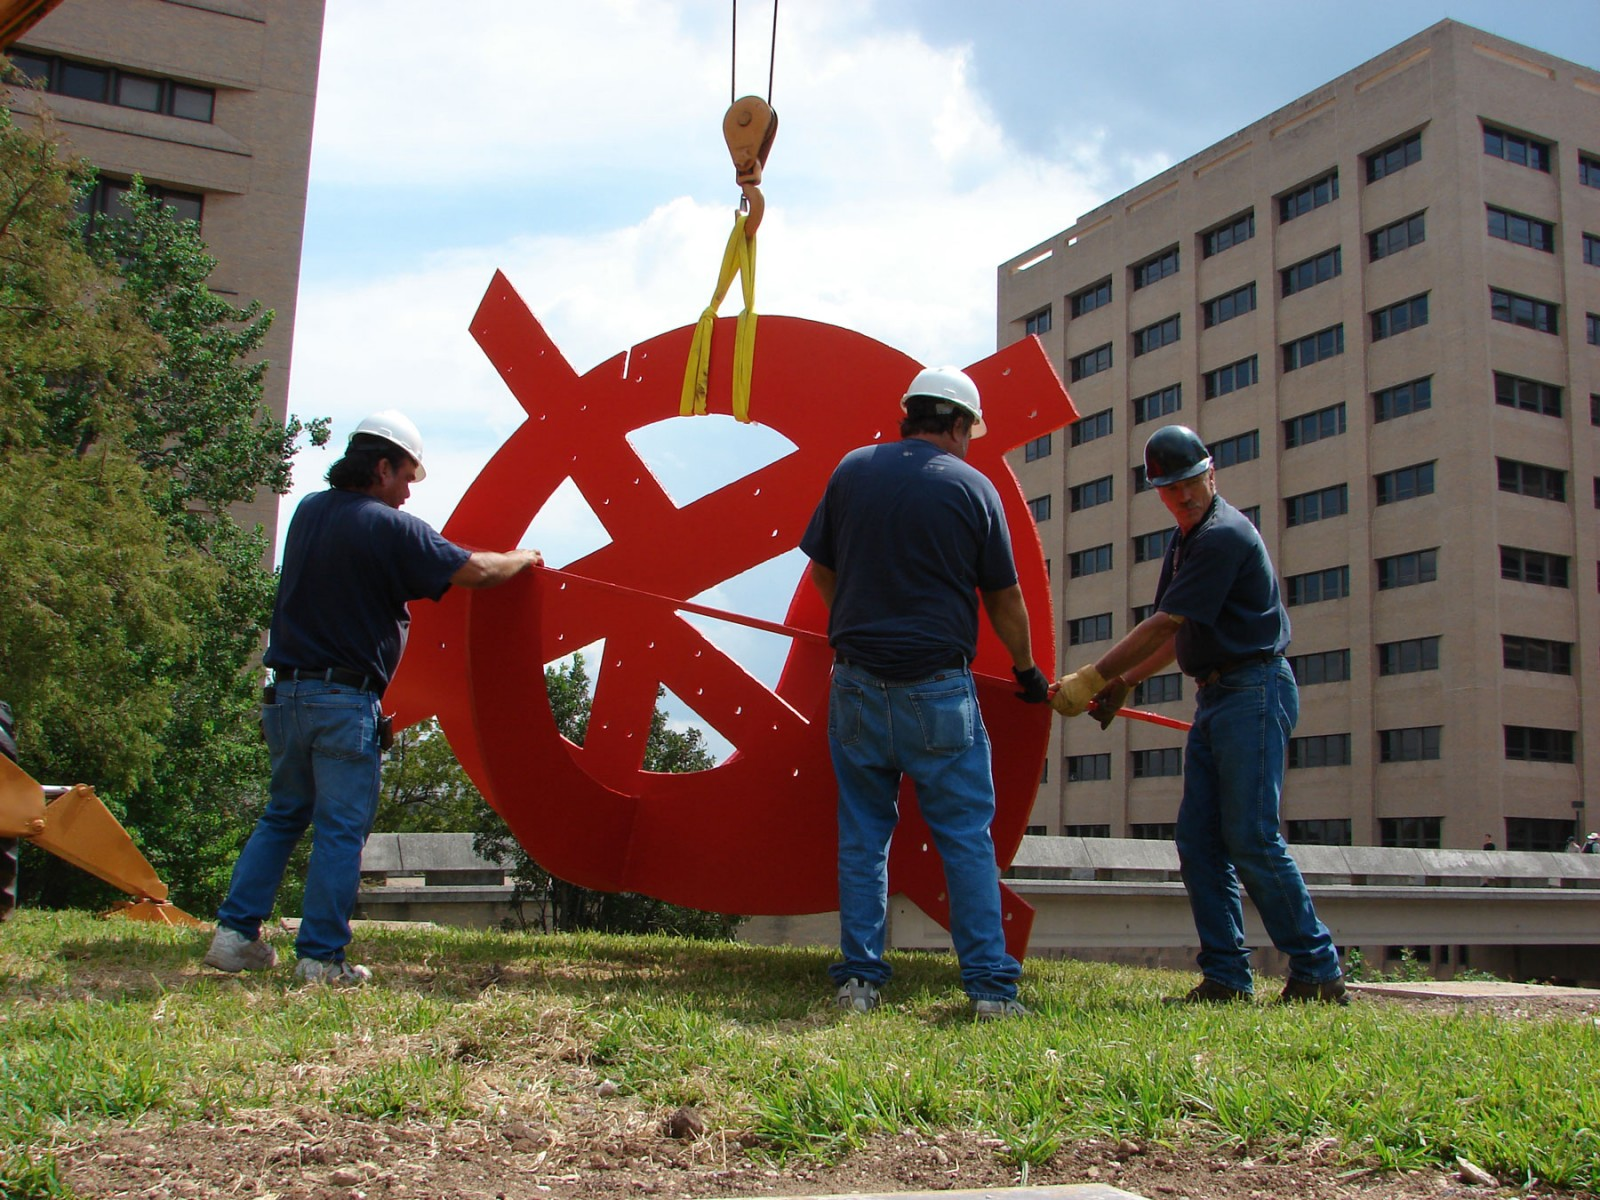 Men working on a large red metal sculpture